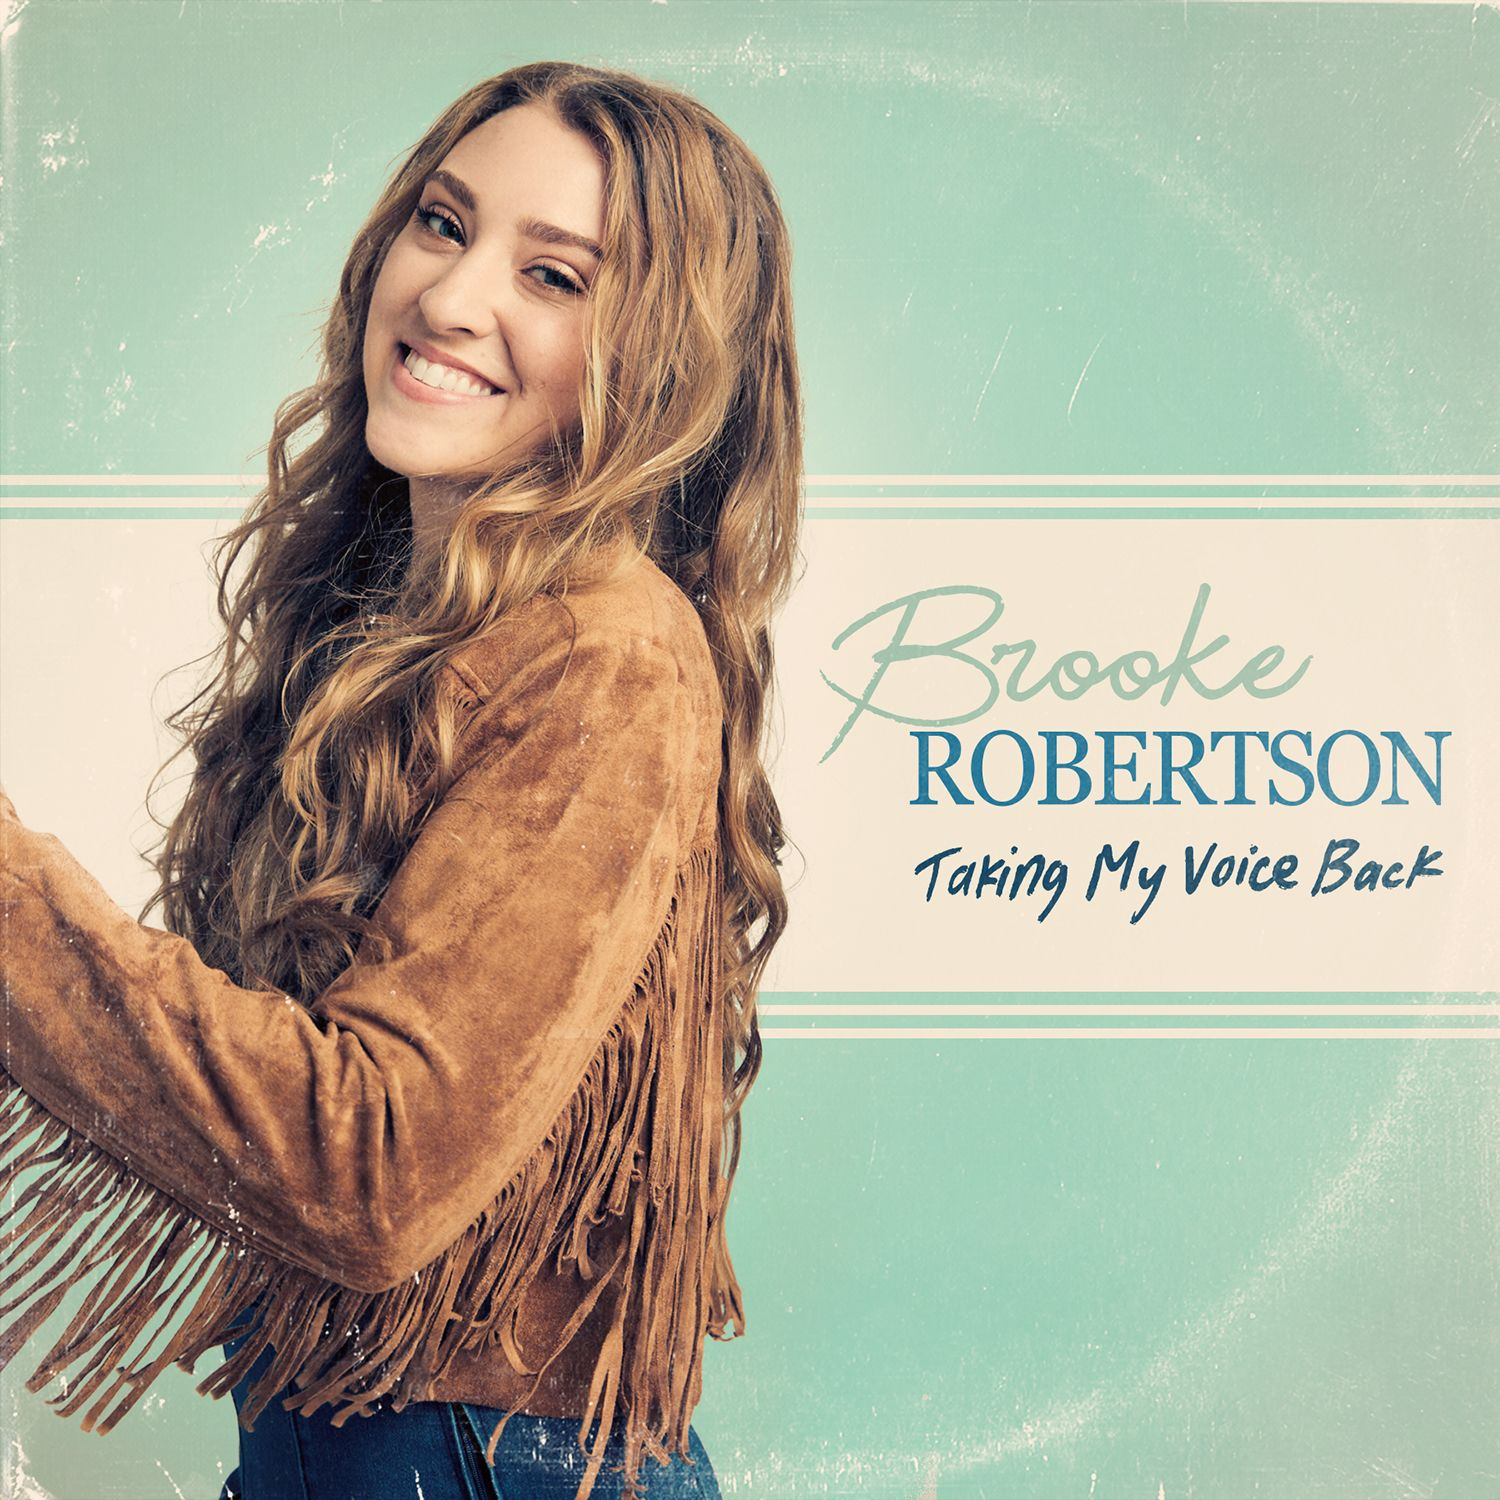 Brooke Robertson - Taking My Voice Back